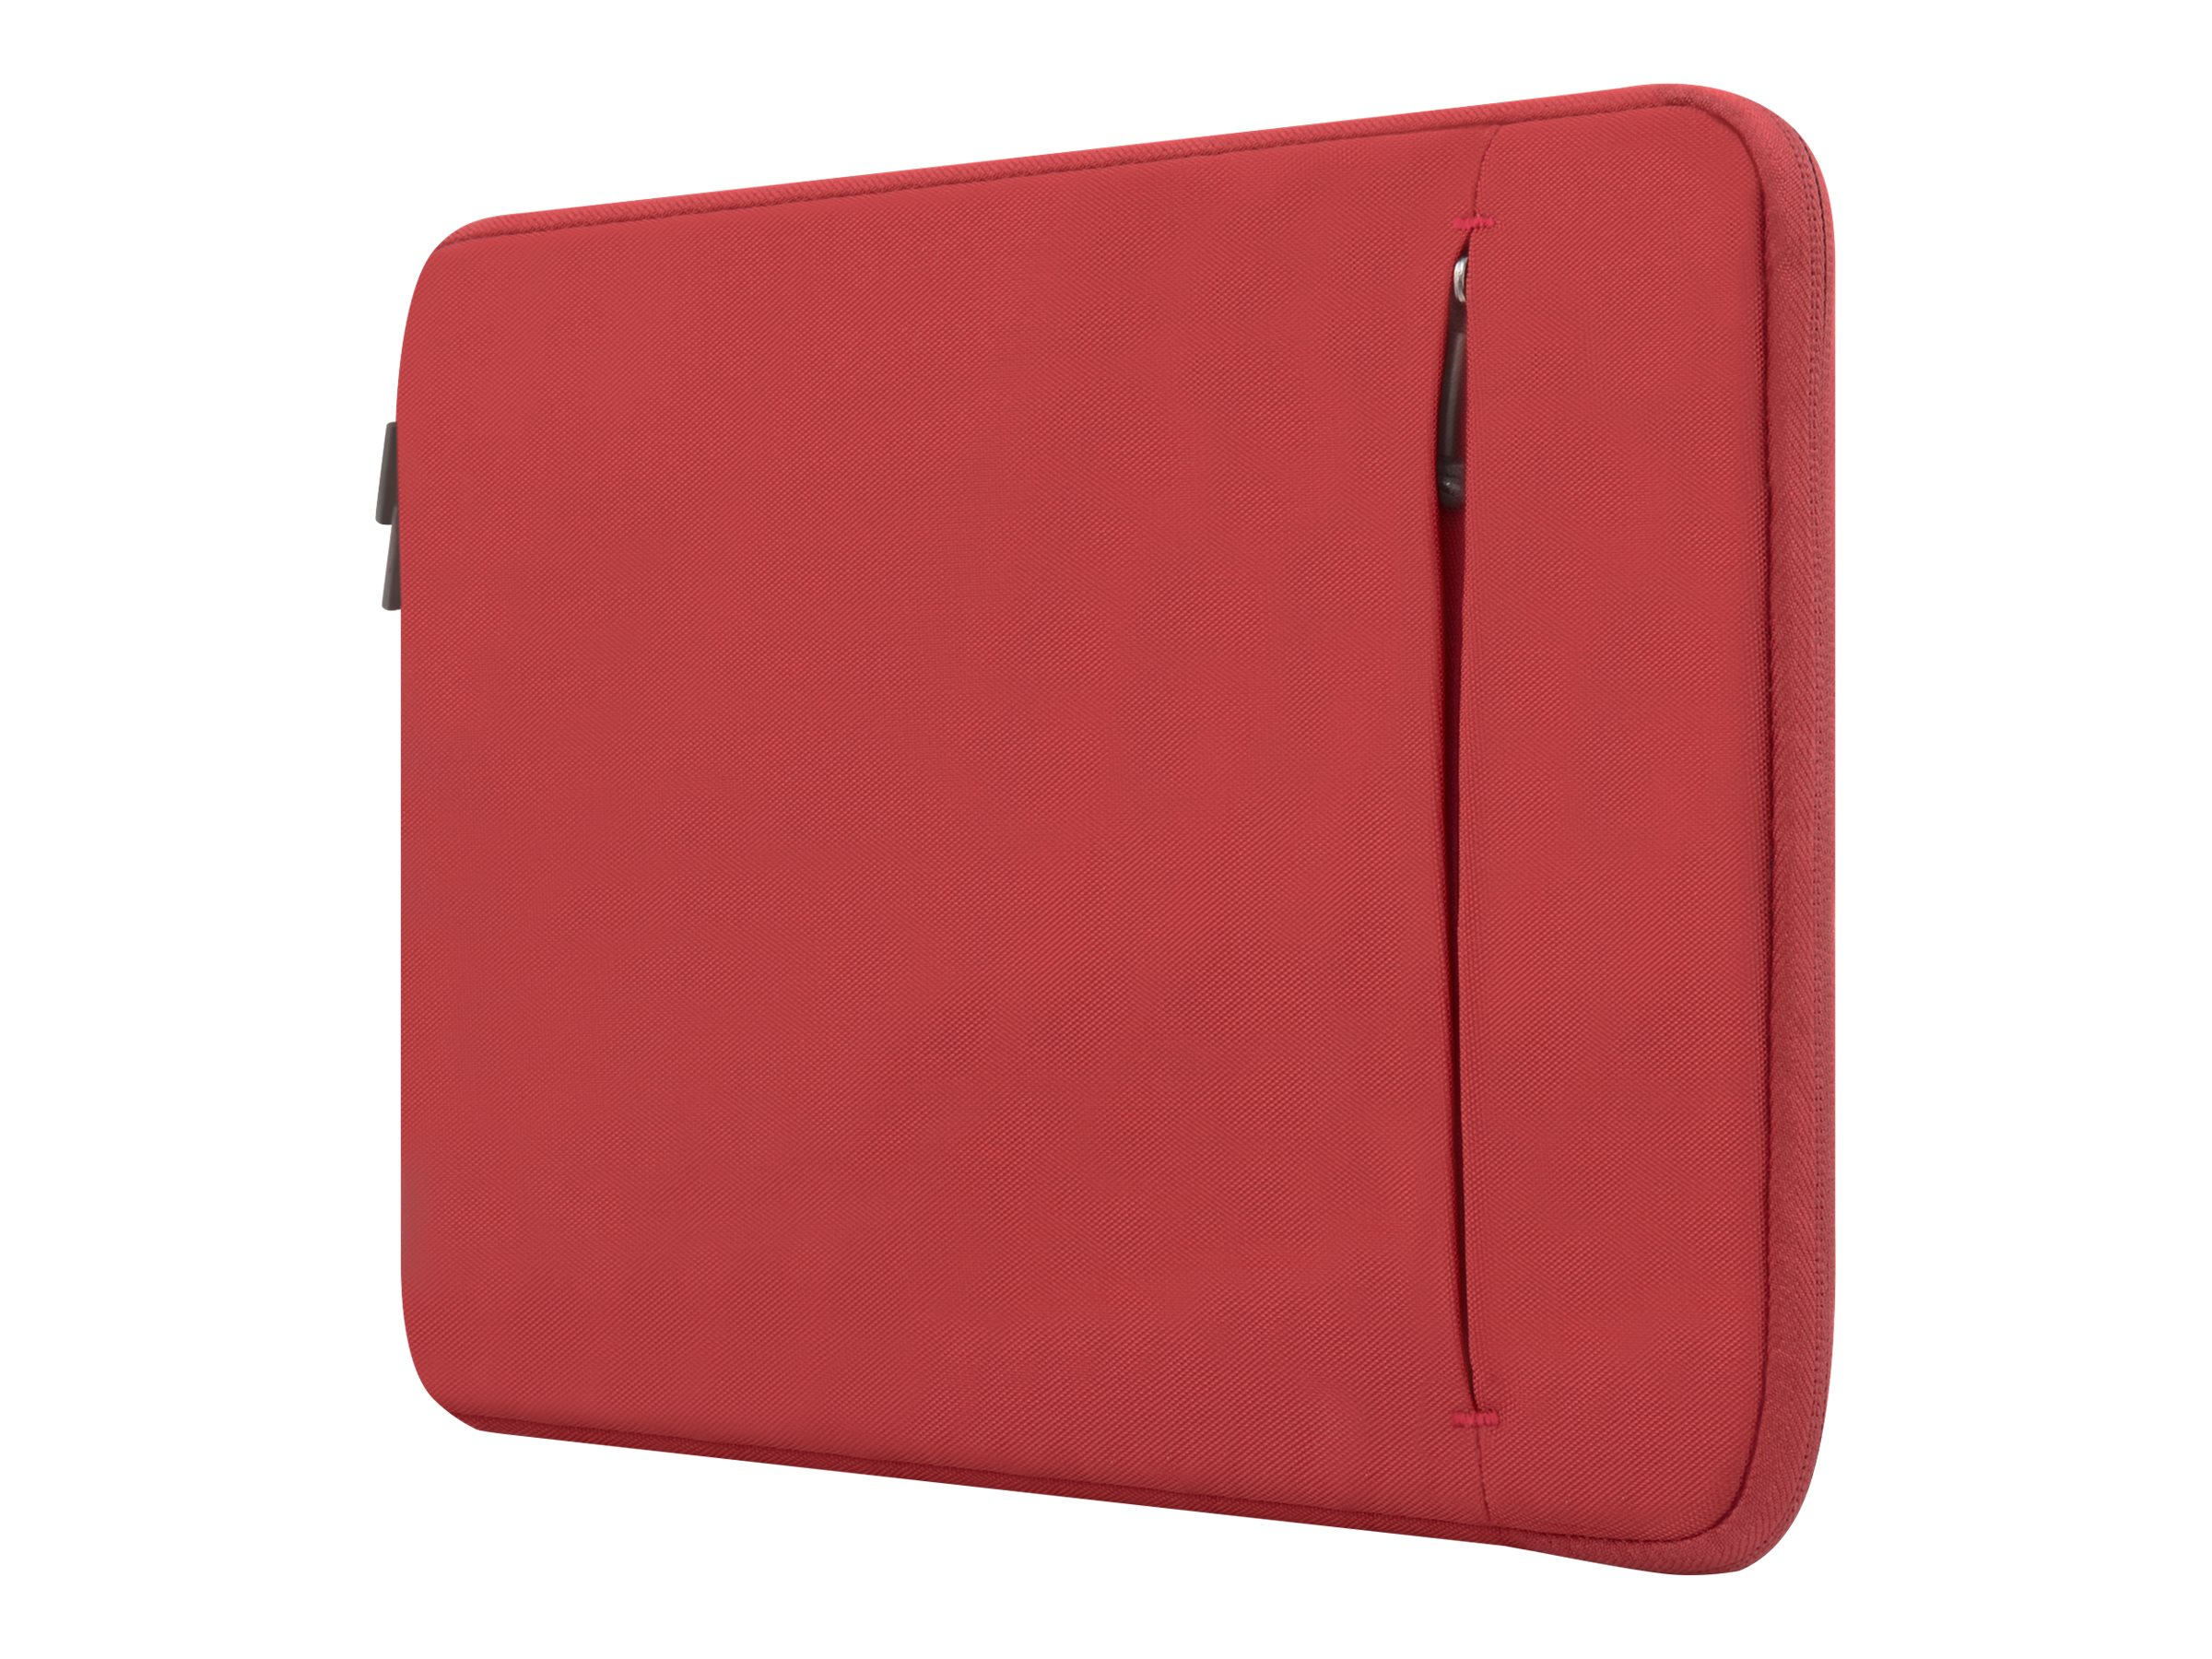 Incipio ORD Protective Padded Sleeve for Samsung Galaxy Tab Pro S, Red